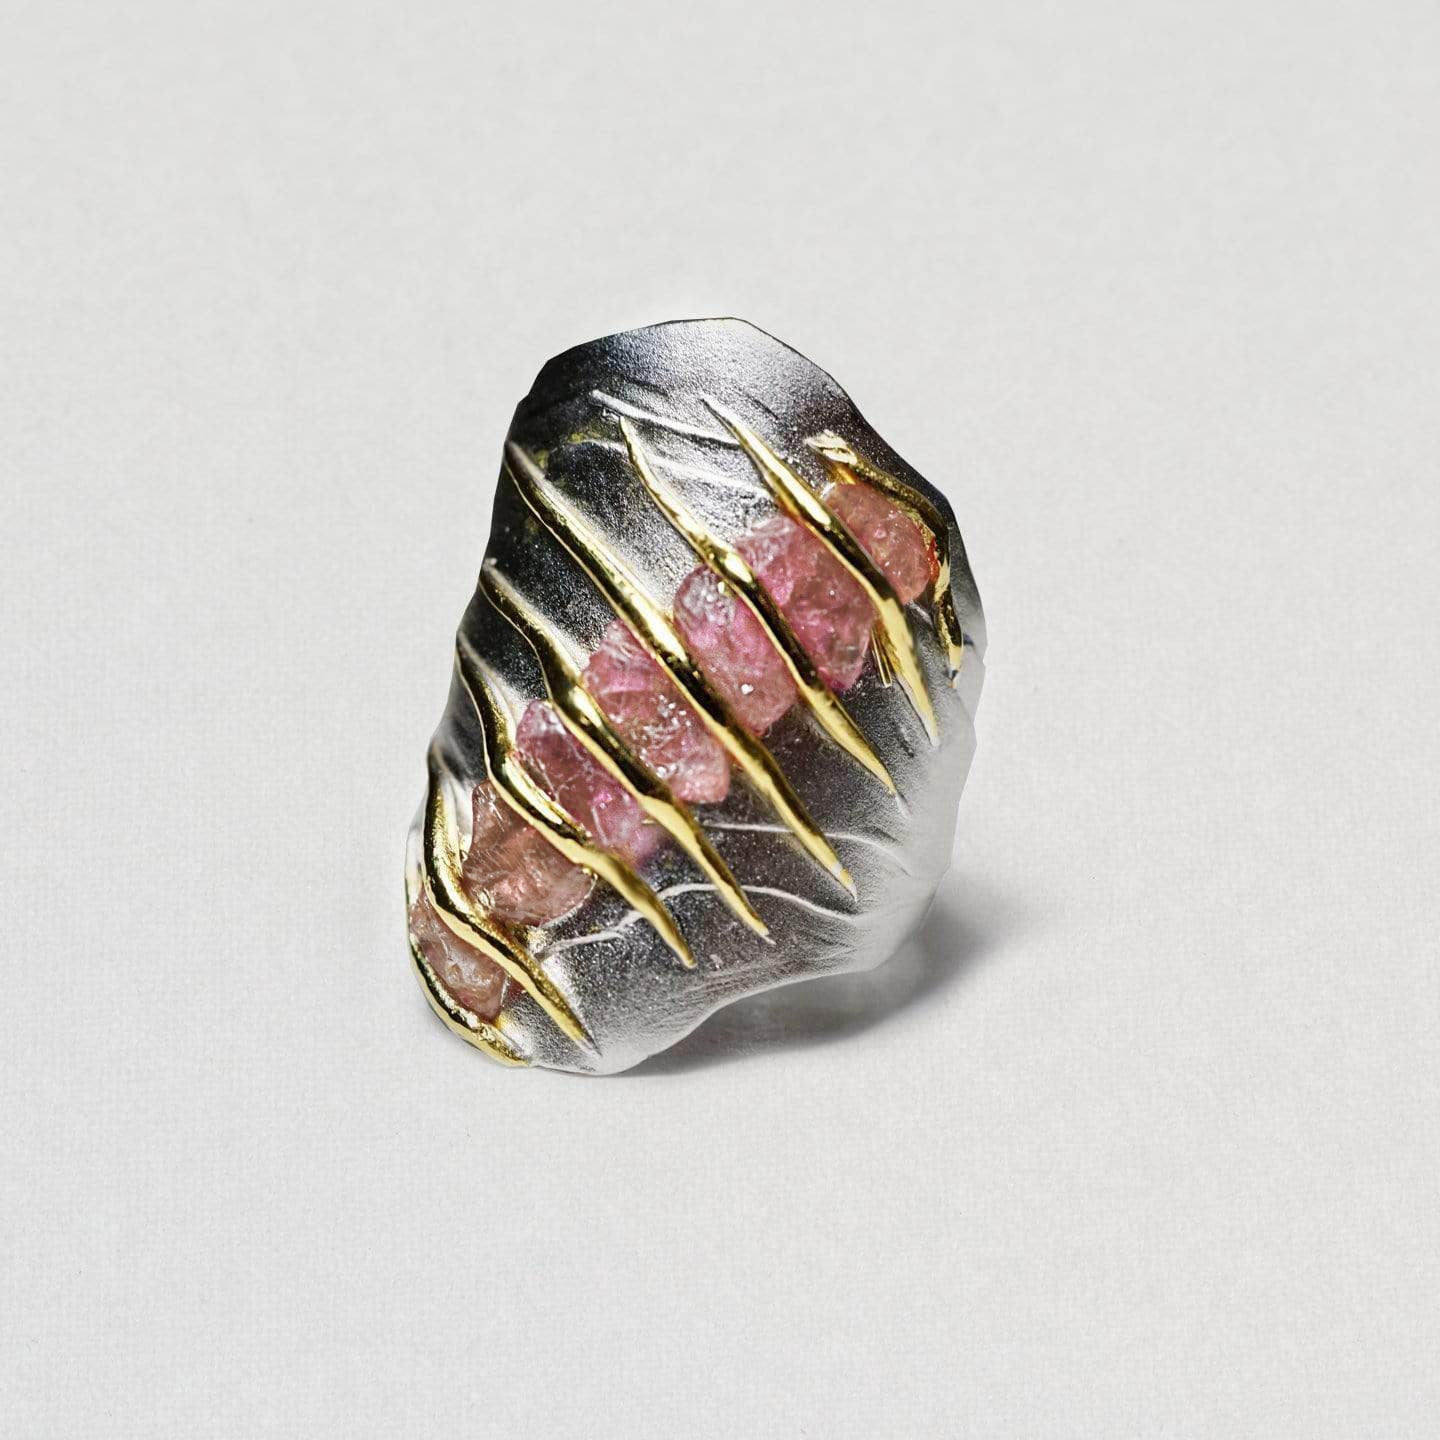 Warda Ring, Gold, gray, Handmade, Rhodium, Ruby, spo-disabled, StoneColor:PinkRuby, Style:Everyday, Type:StoneCandyWired Ring